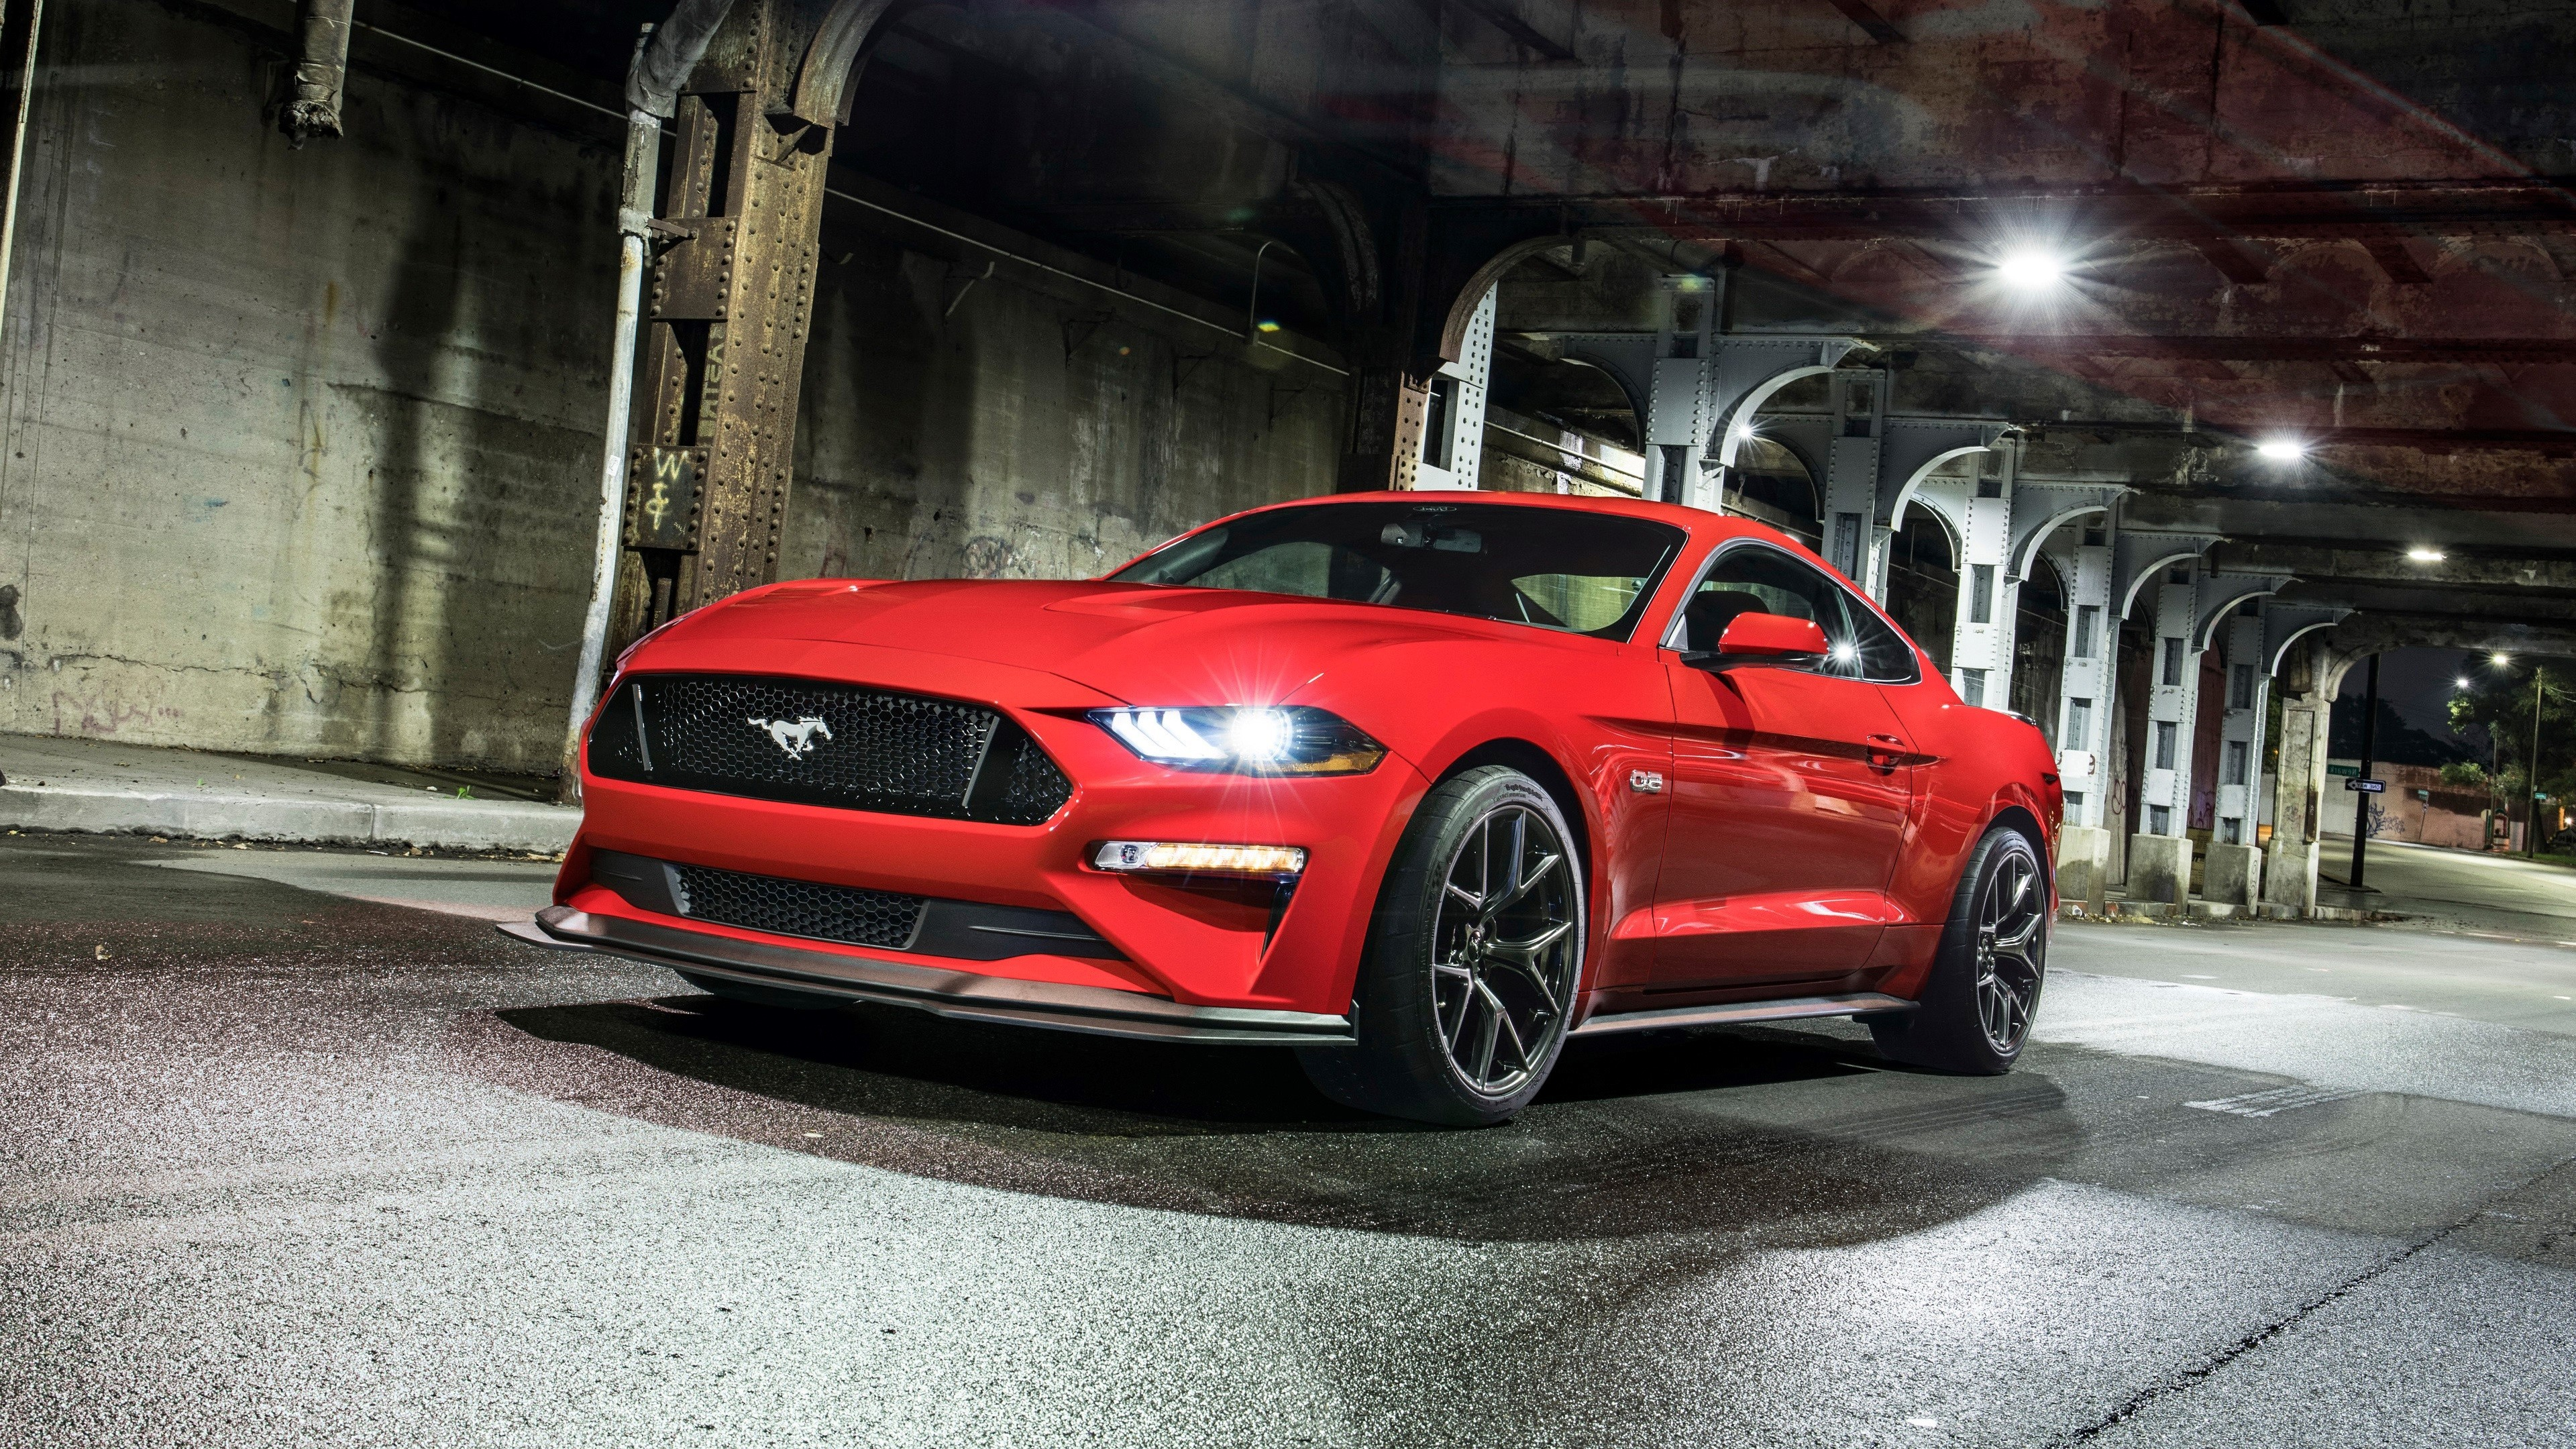 2018 mustang gt wallpapers 71 background pictures - Car 4k wallpaper ...